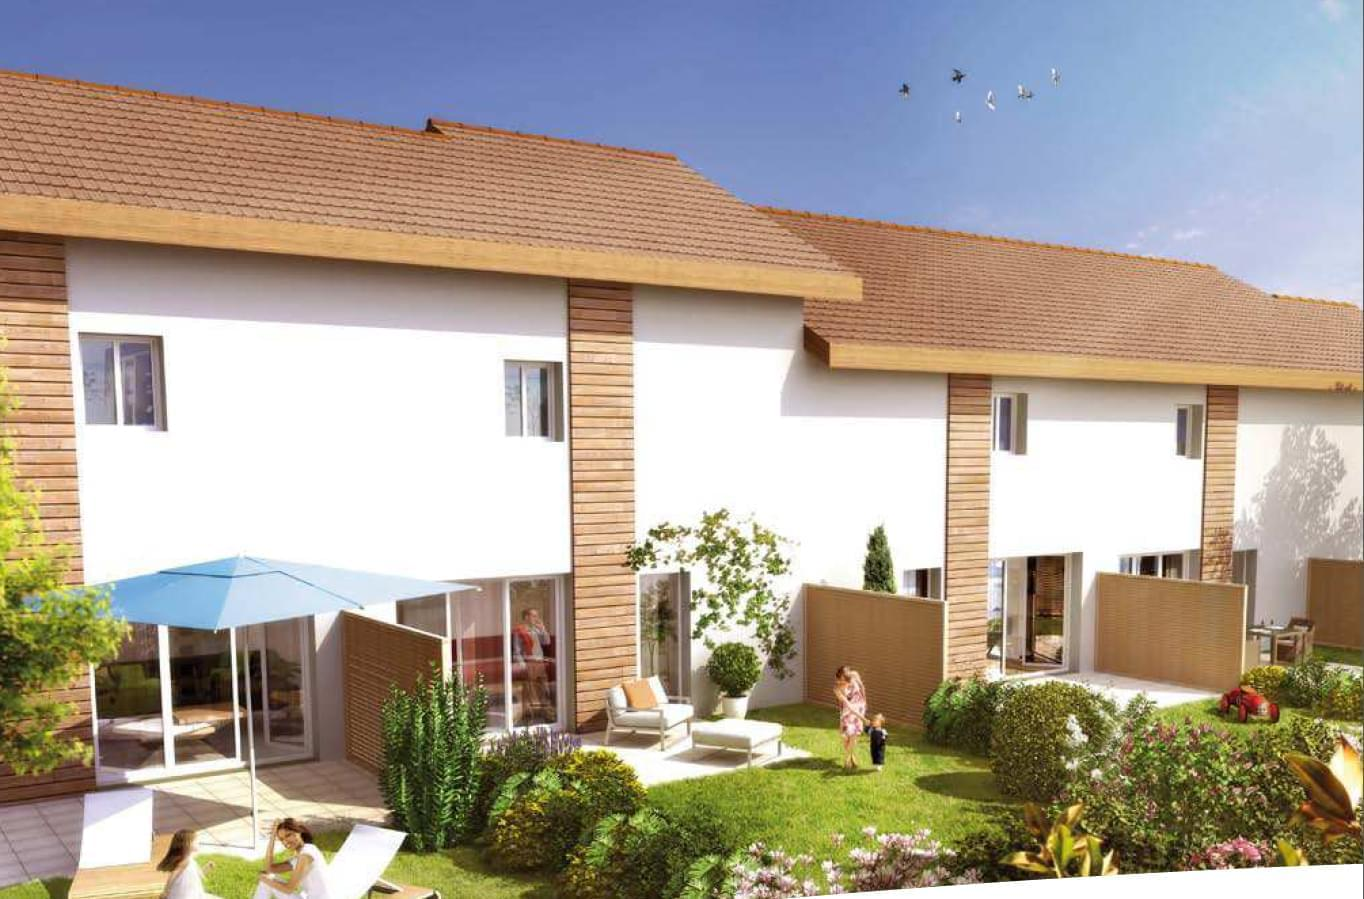 Immobilier neuf rumilly c t nature for Immobilier neuf